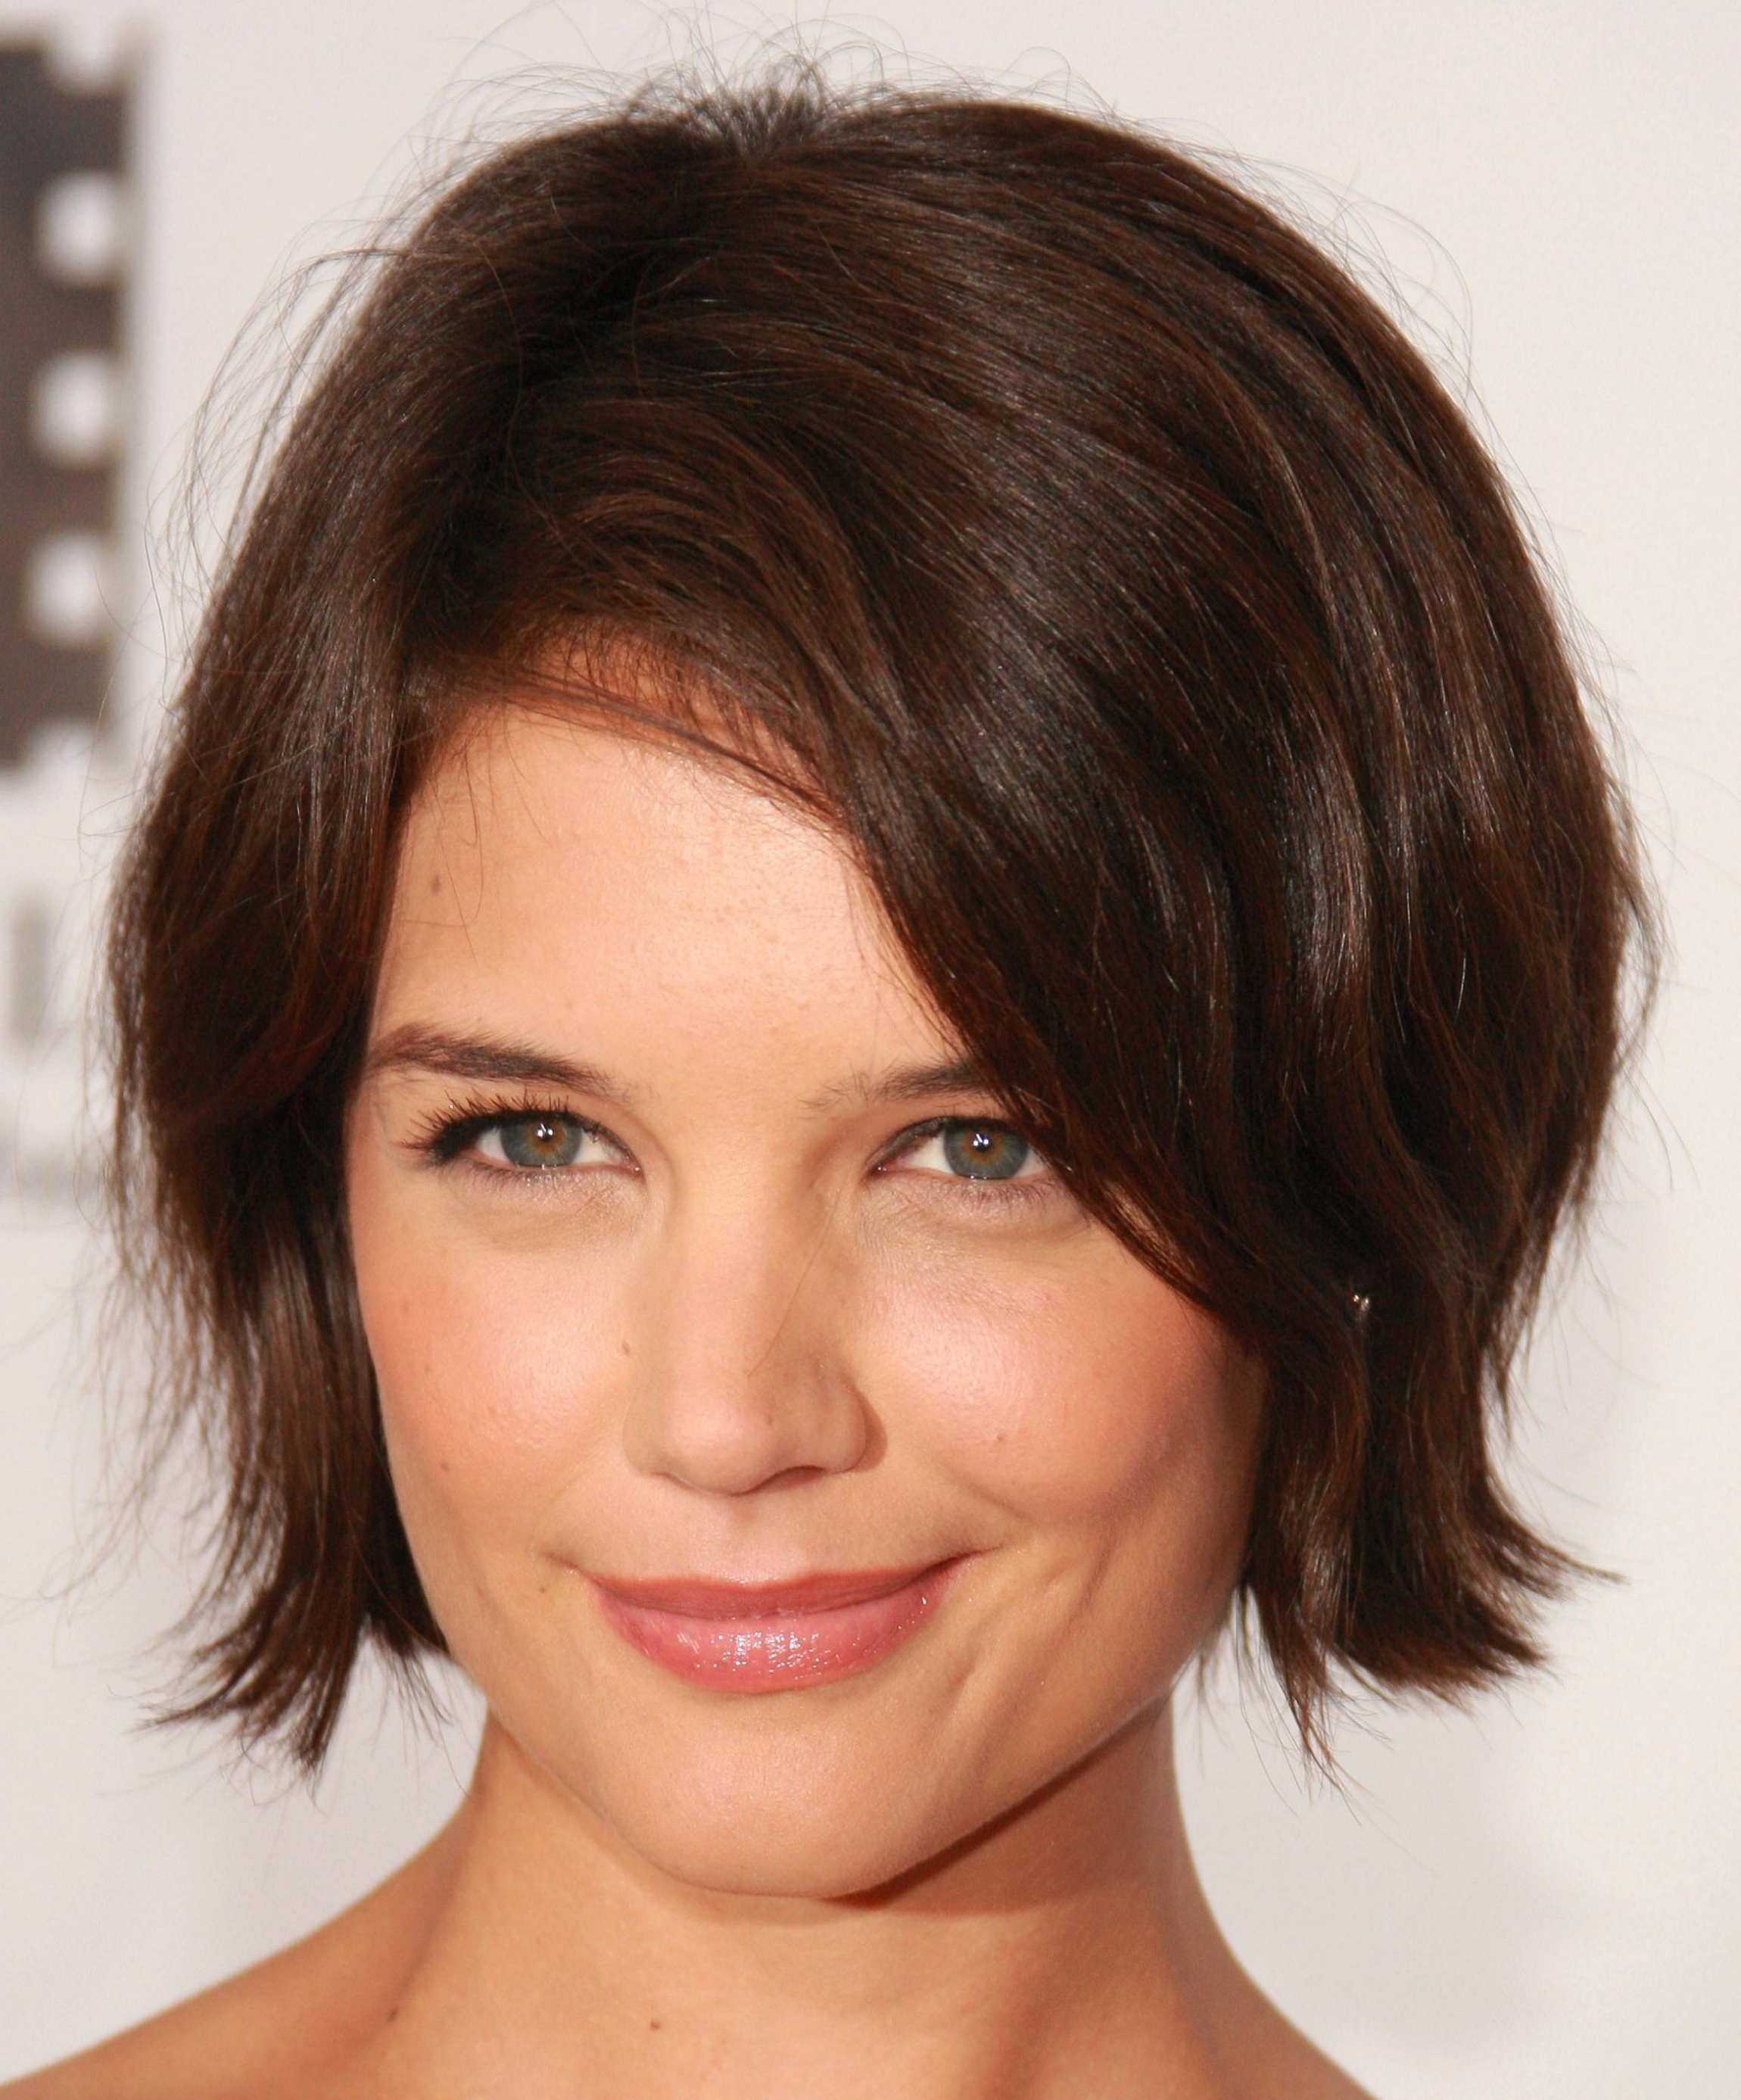 Enchanting Short Hairstyles For Oval Faces With Bangs Also Bangs For Inside Curly Short Hairstyles For Oval Faces (View 13 of 25)